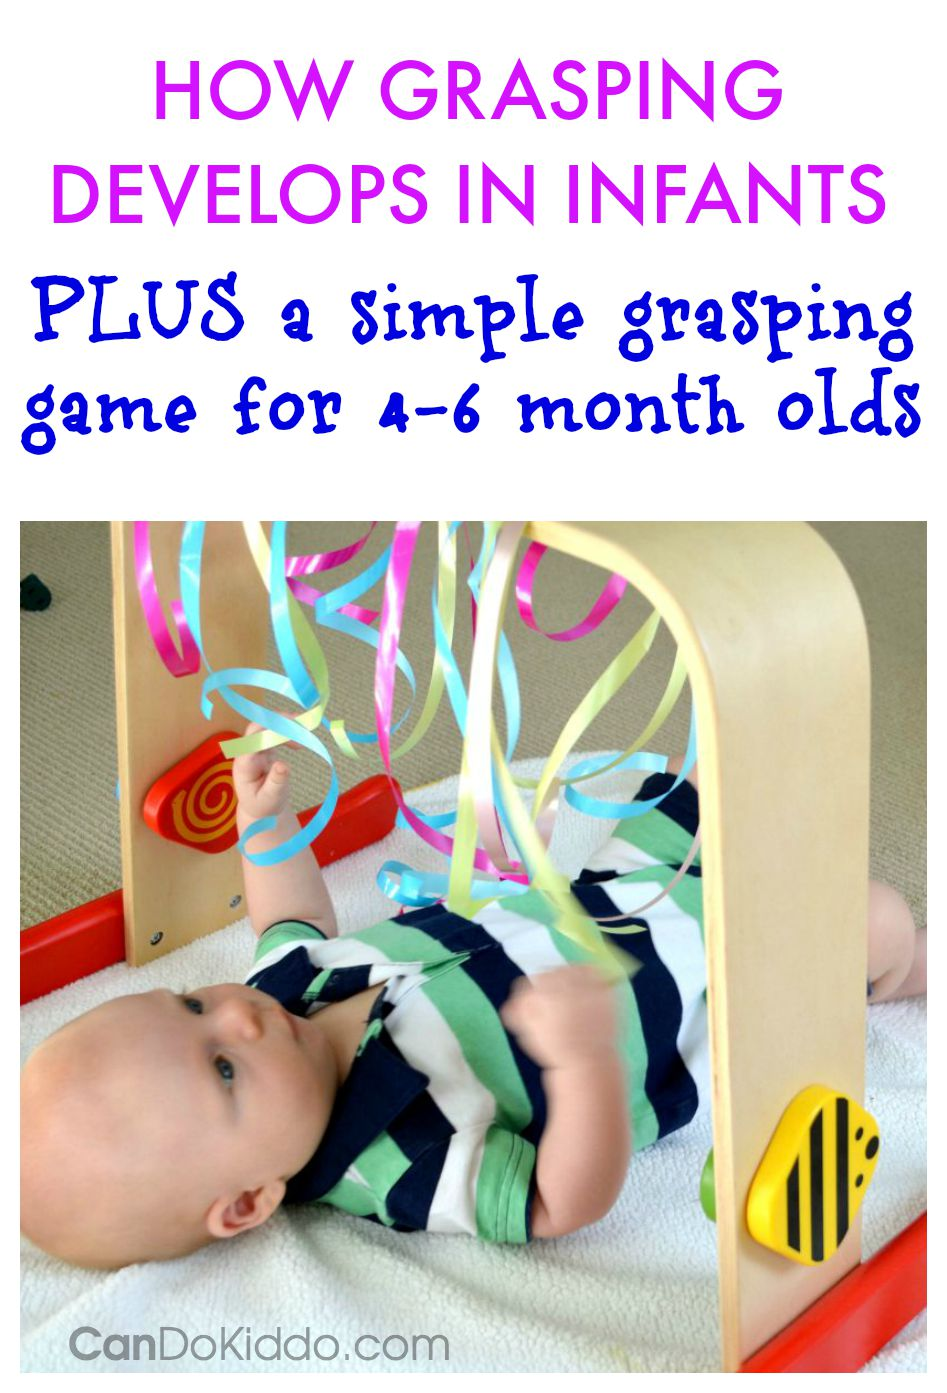 Grasping Play for Babies. CanDoKiddo.com